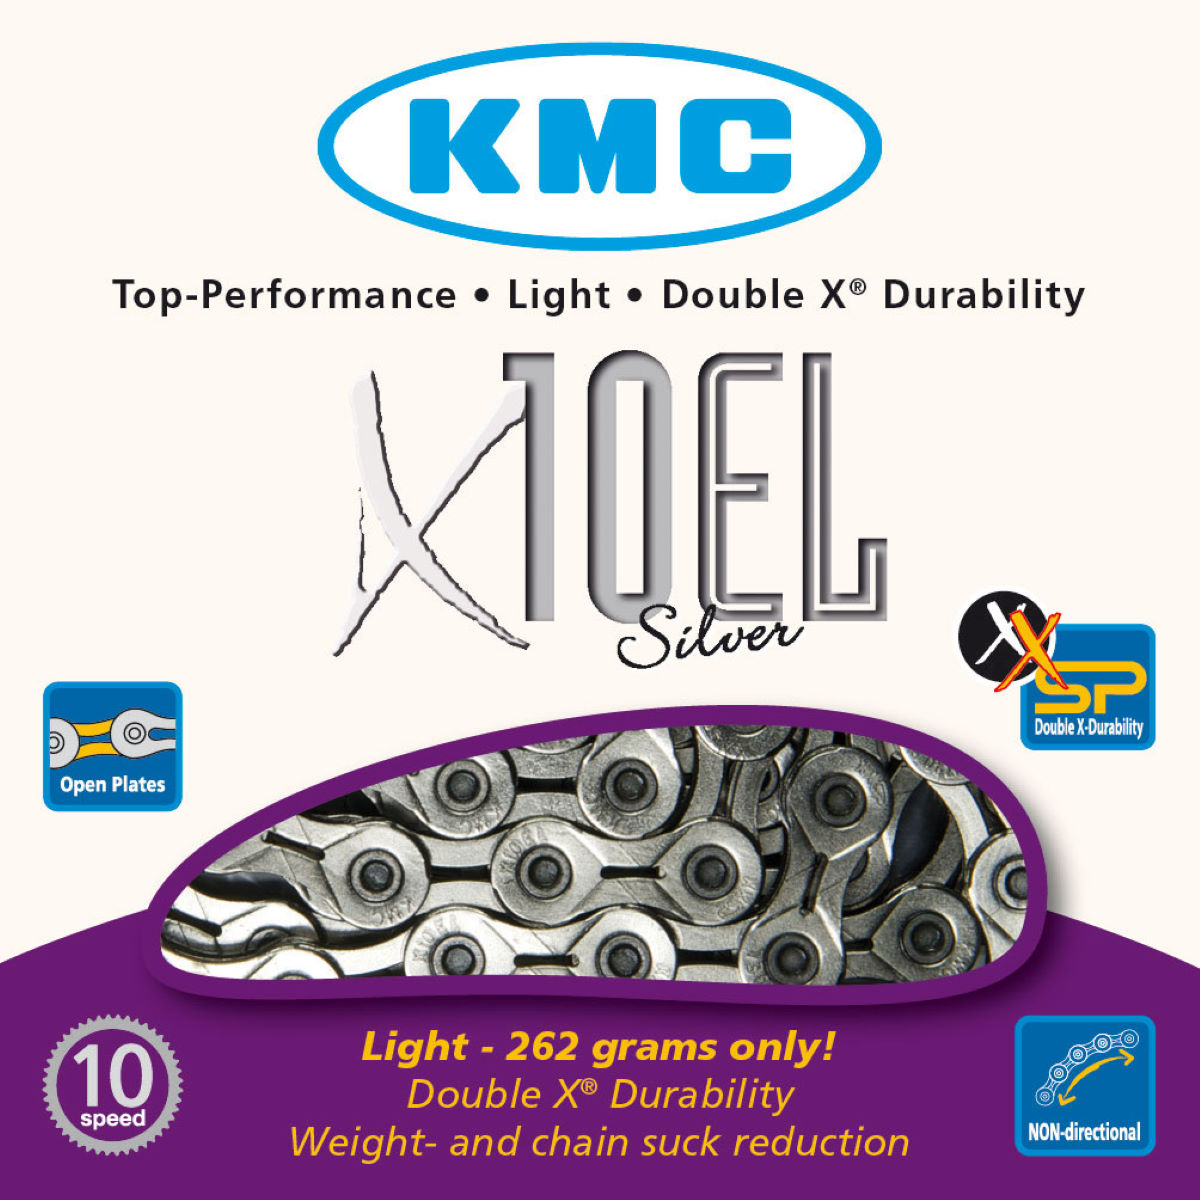 KMC X10-EL Silver 10 Speed Chain